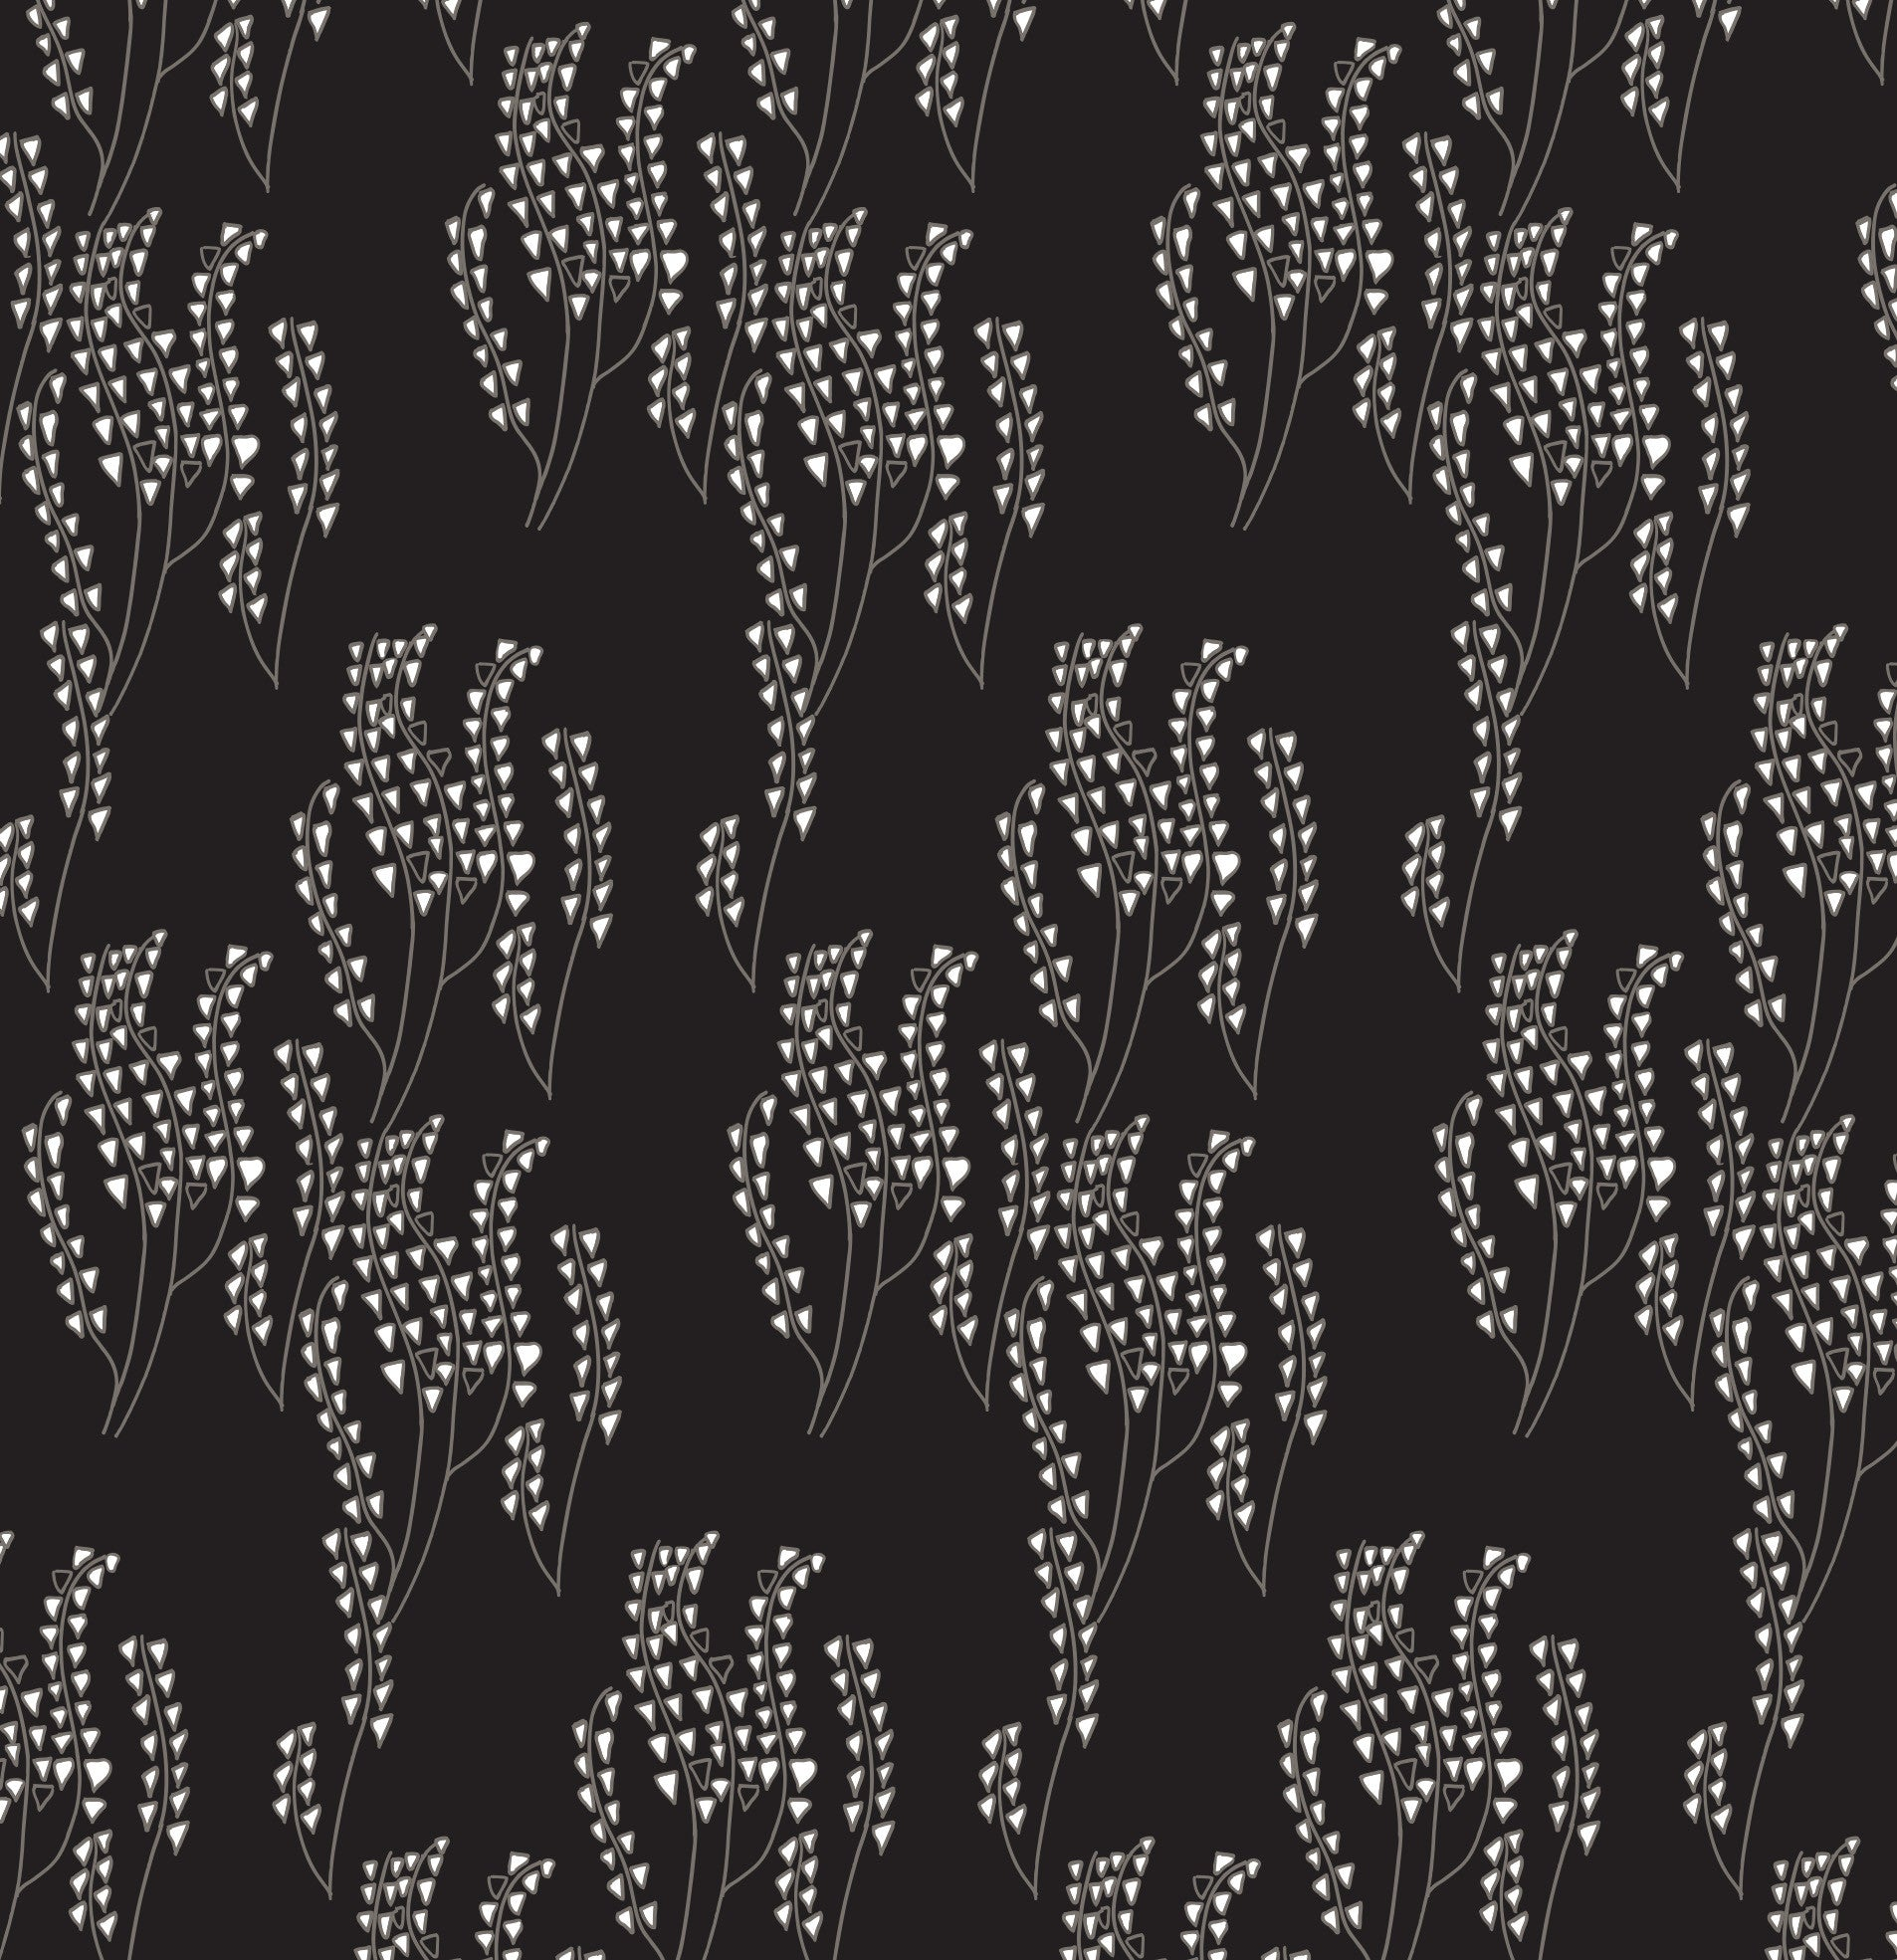 Maricopa Floral Pattern Linen Cotton Home Decor Fabric by yard or by the meter for curtains, blinds or upholstery - Black with grey ships from Canada (USA)